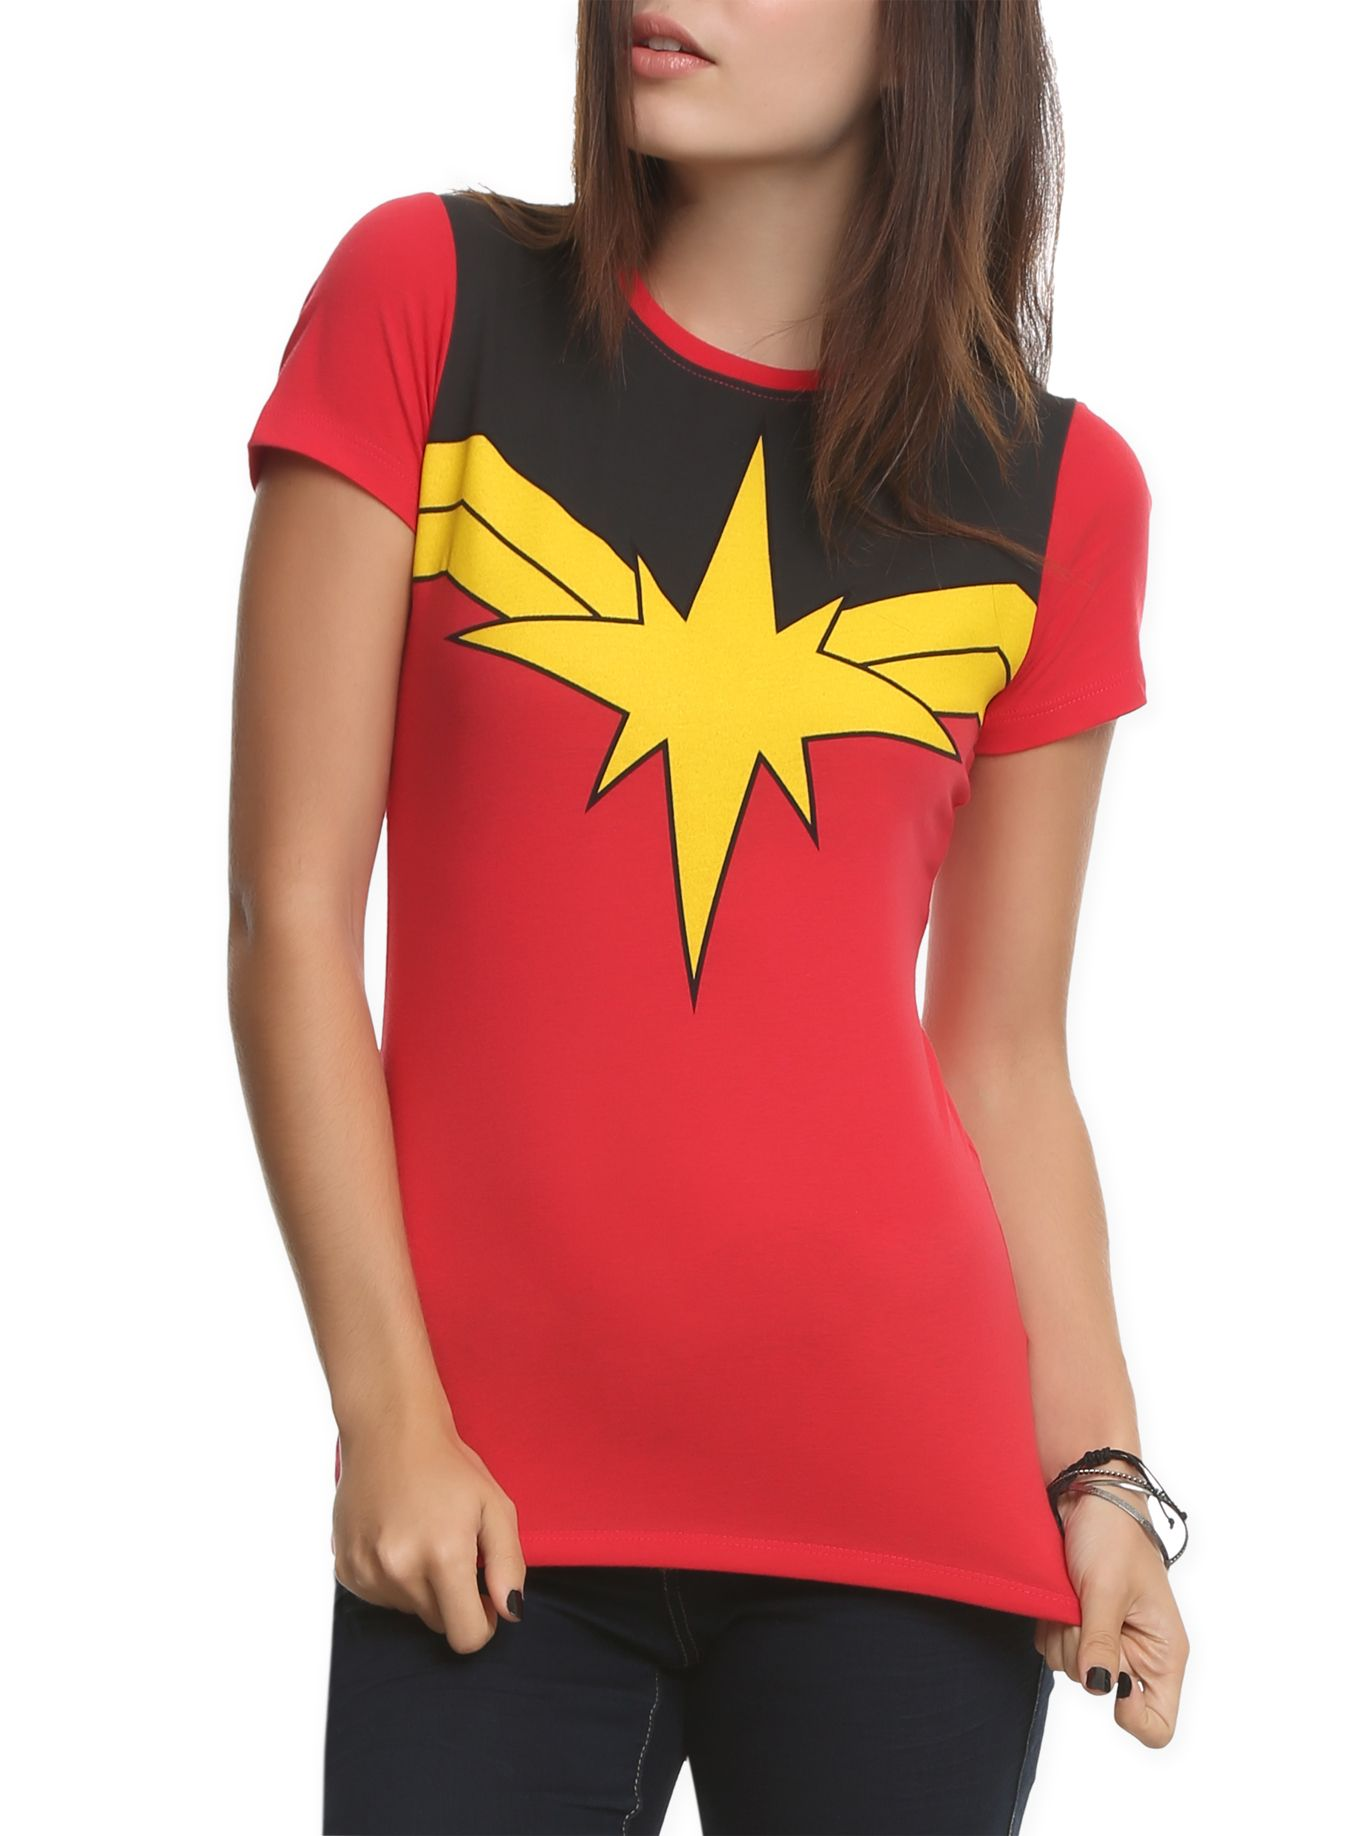 Fitted red tee from Marvel with classic Ms. Marvel costume design.